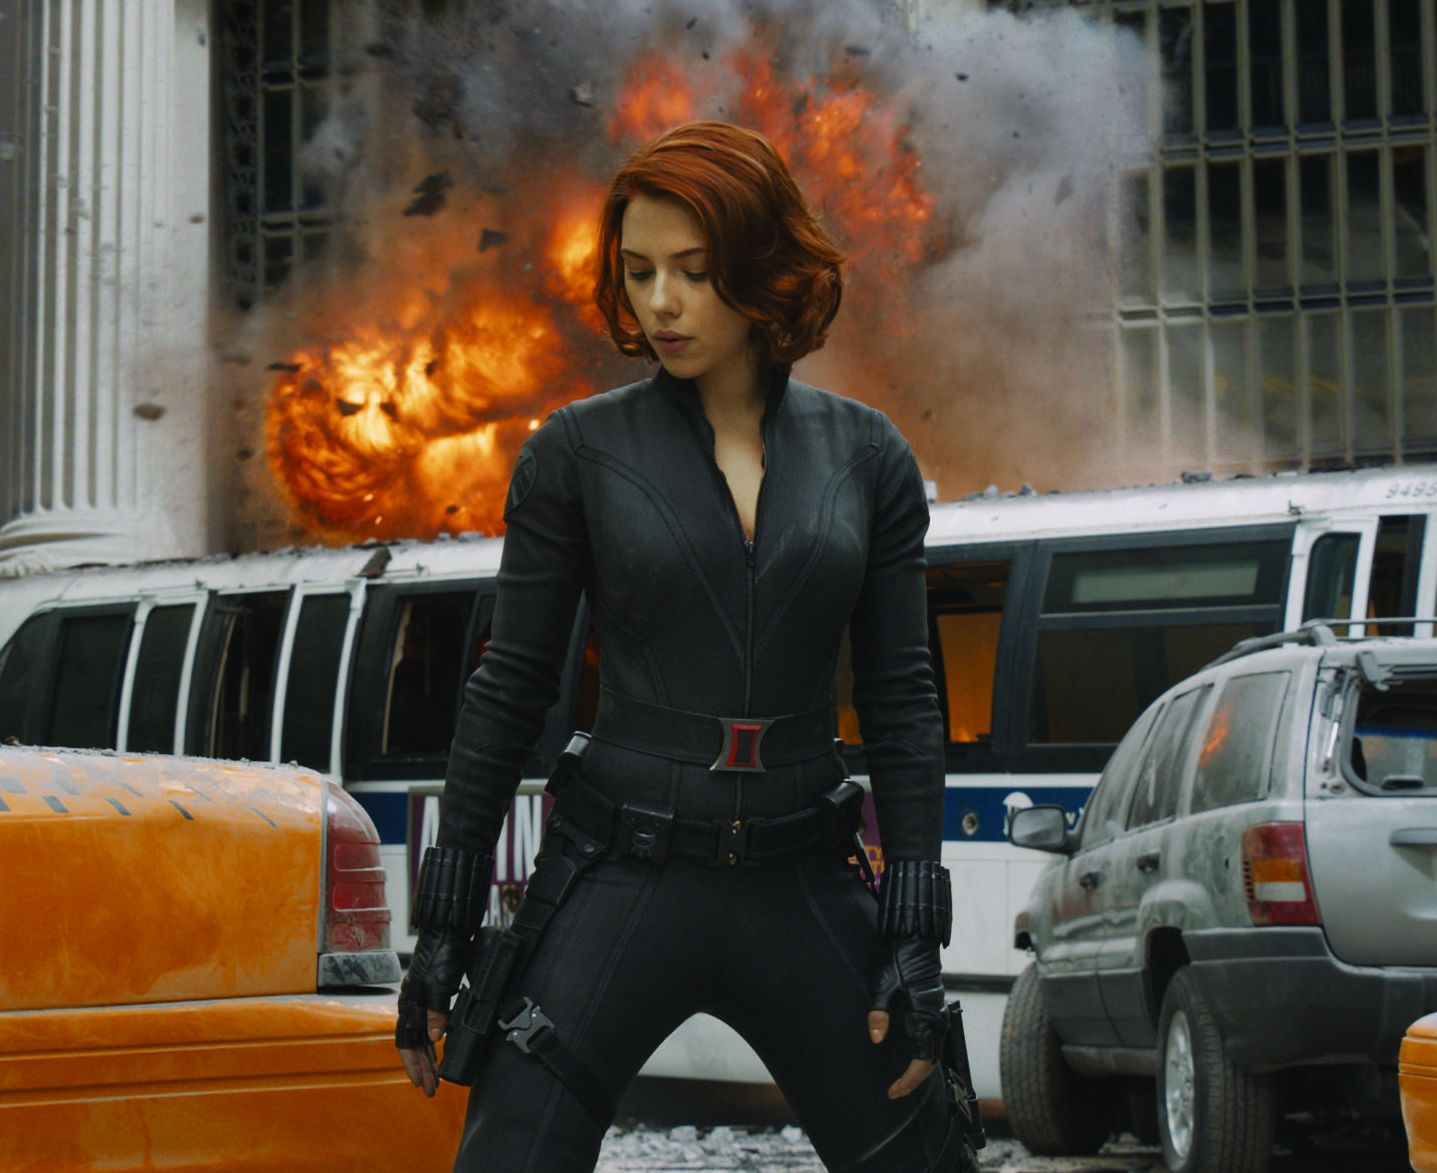 Scarlett Johansson as Black Widow and big fire on the street